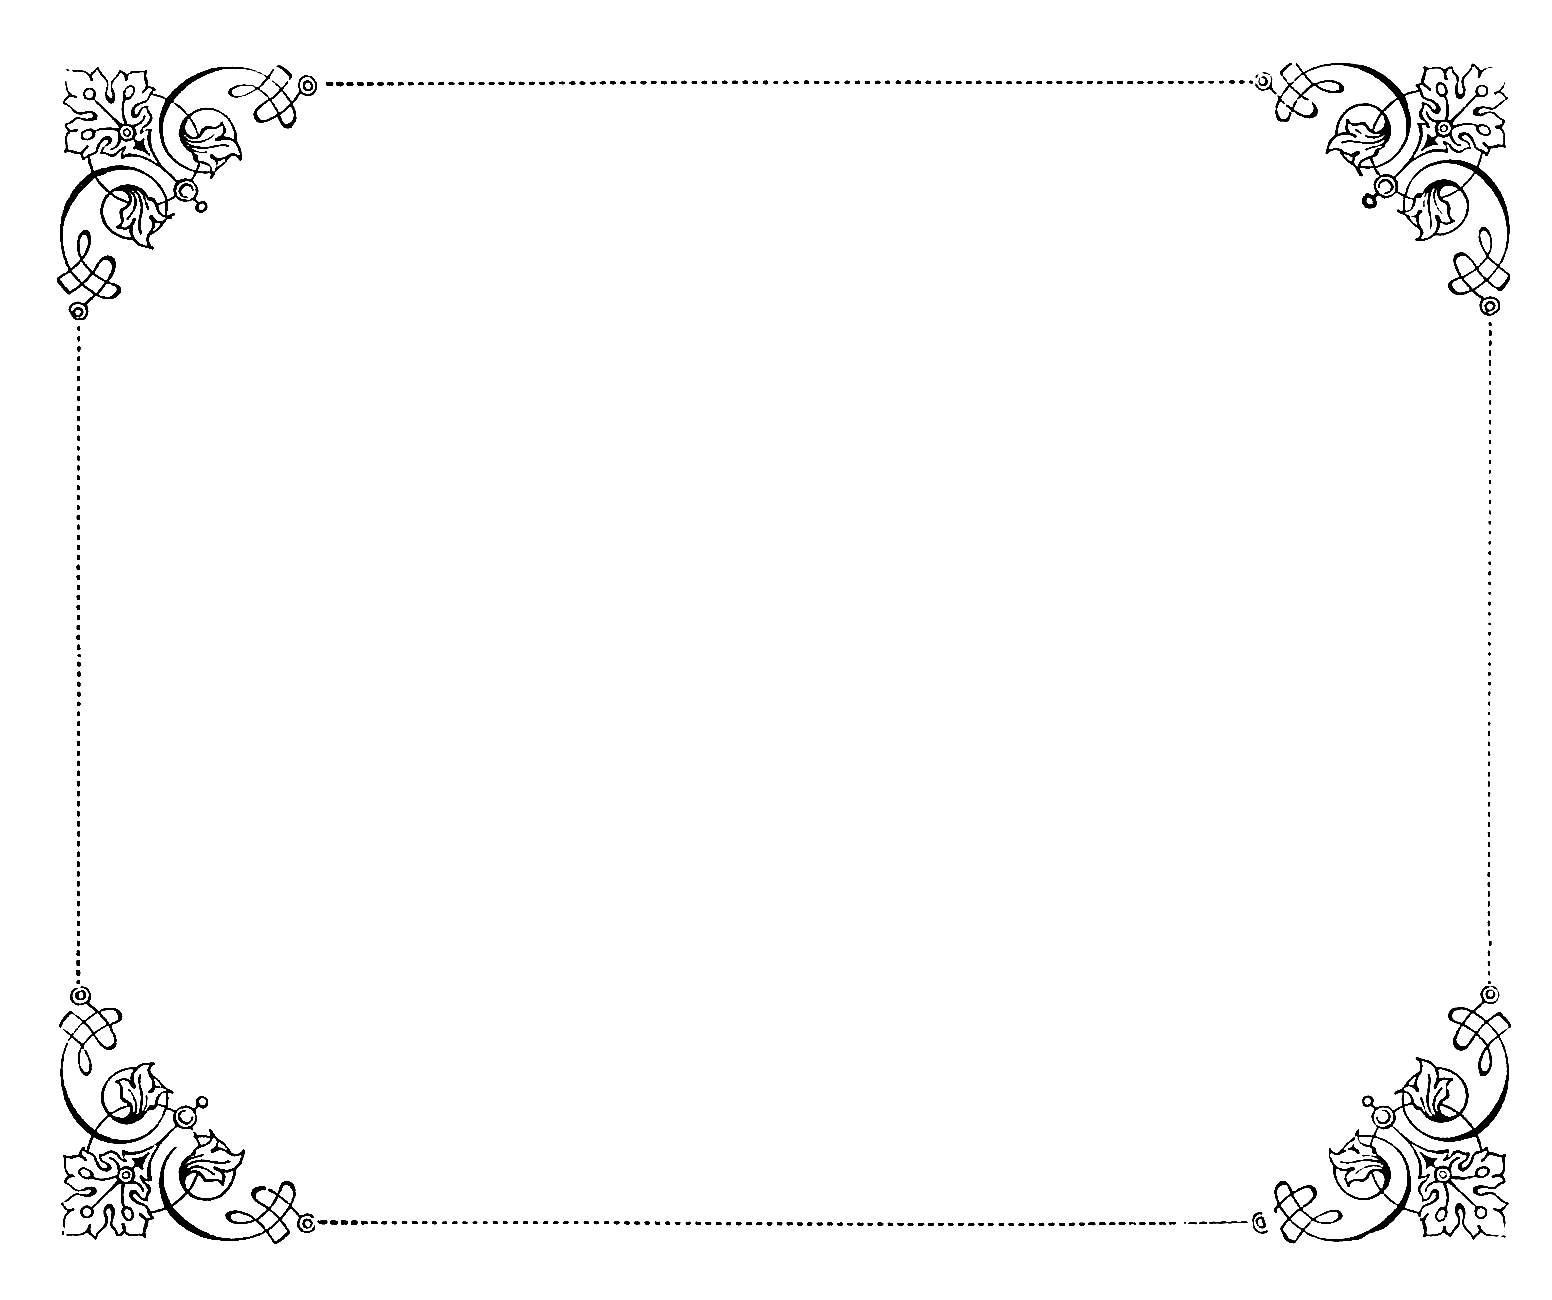 Borders transparent images pluspng. Fancy frame png